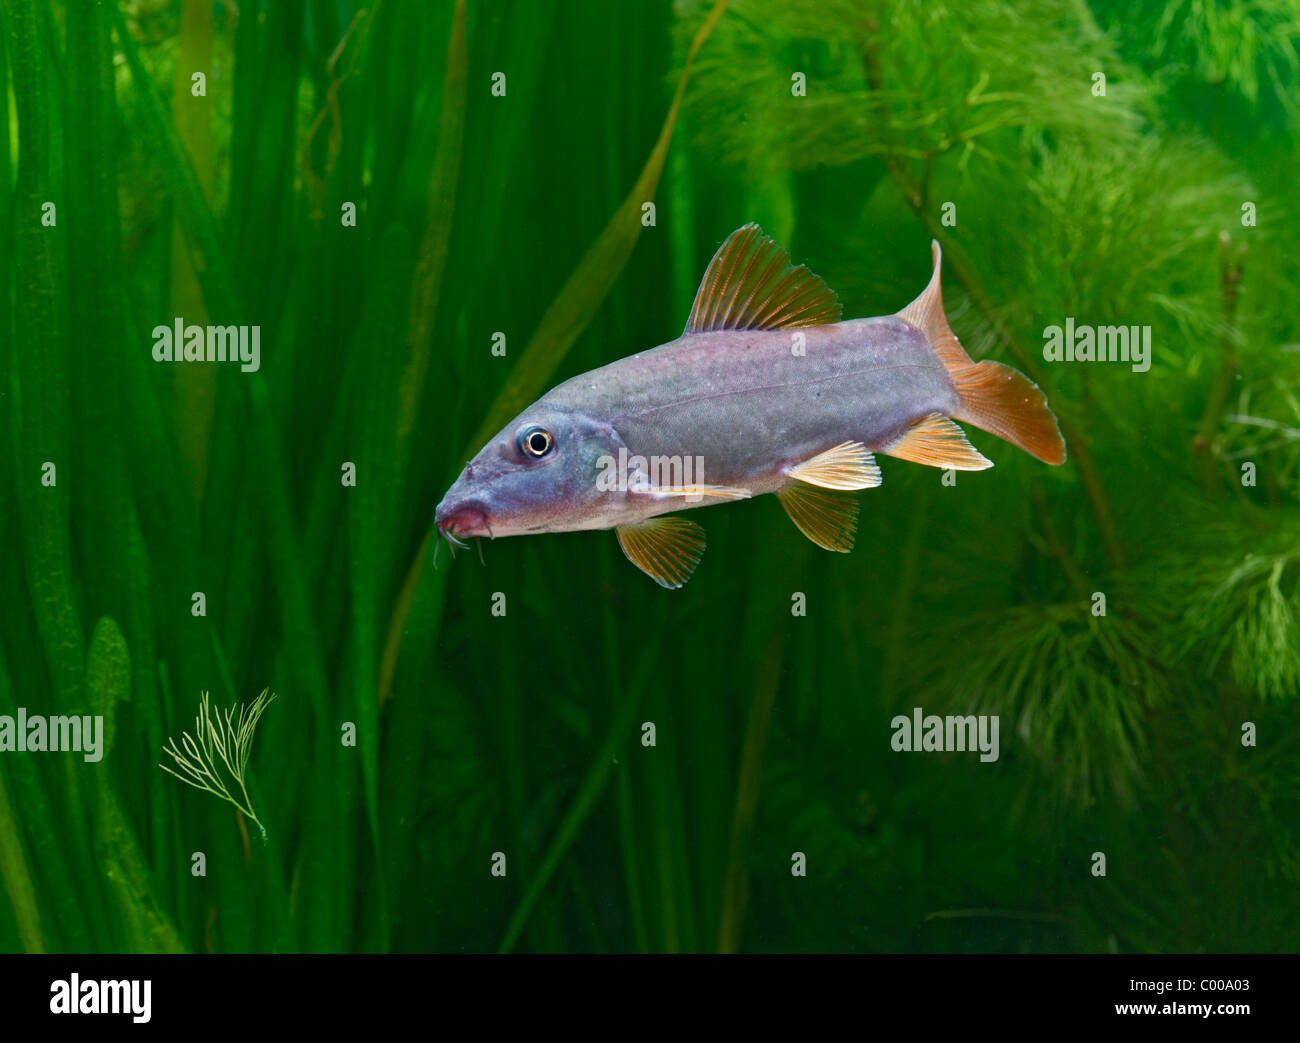 Red Tailed Blue Botia Orange Finned Loach Tropical Freshwater Stock Photo Alamy